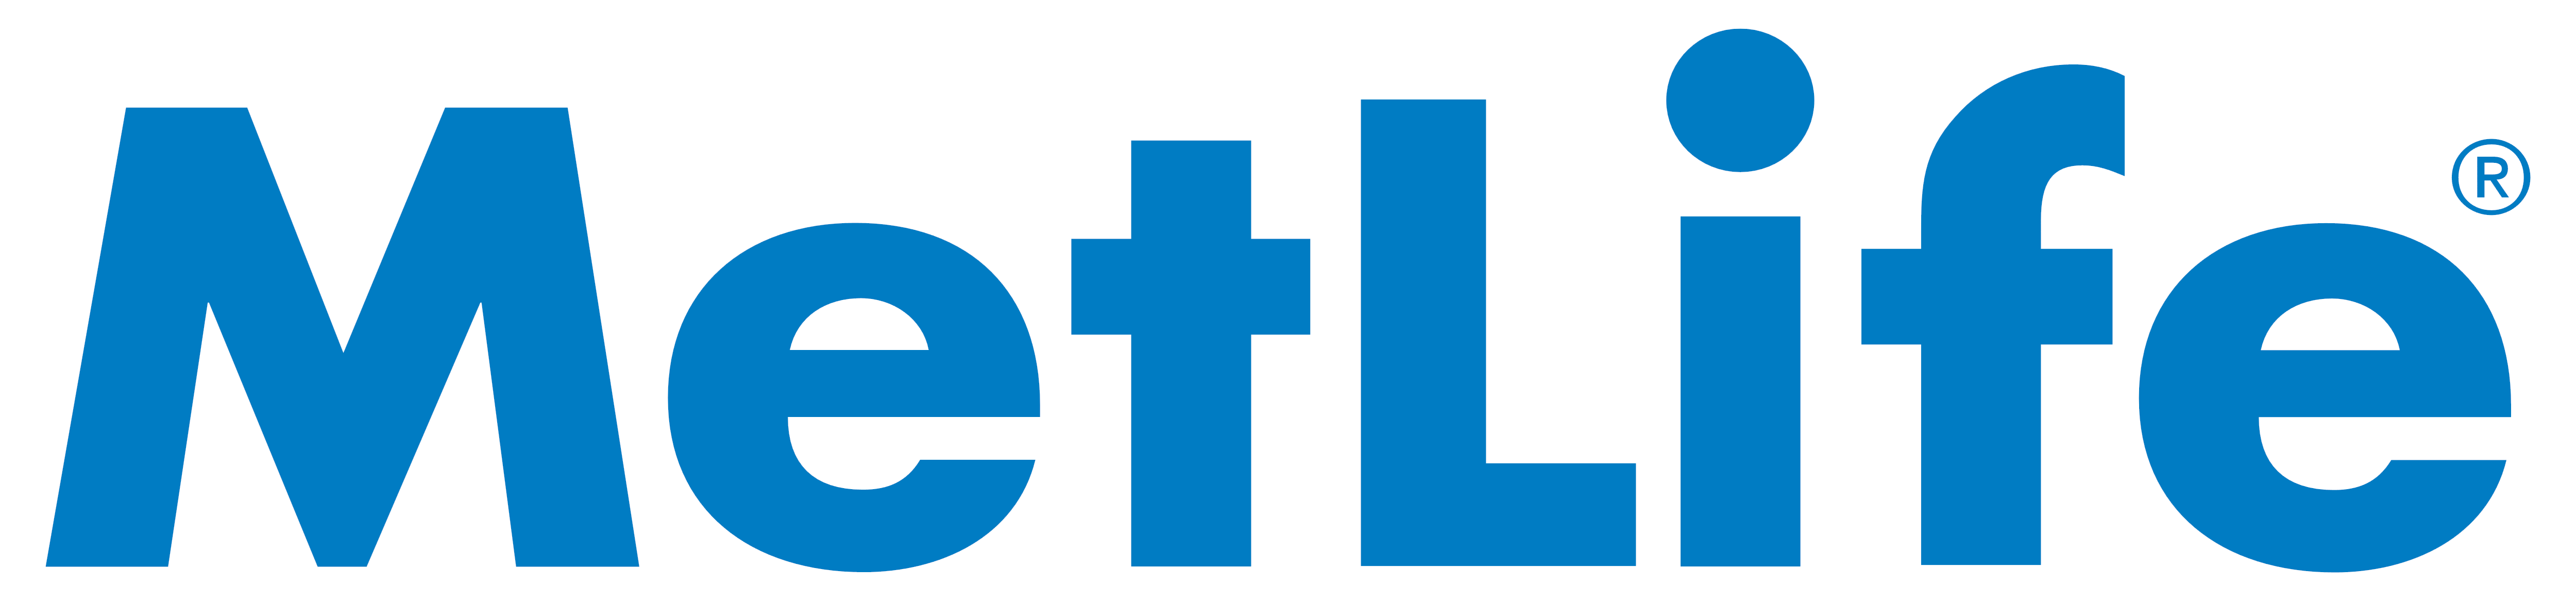 Metlife Logos Download